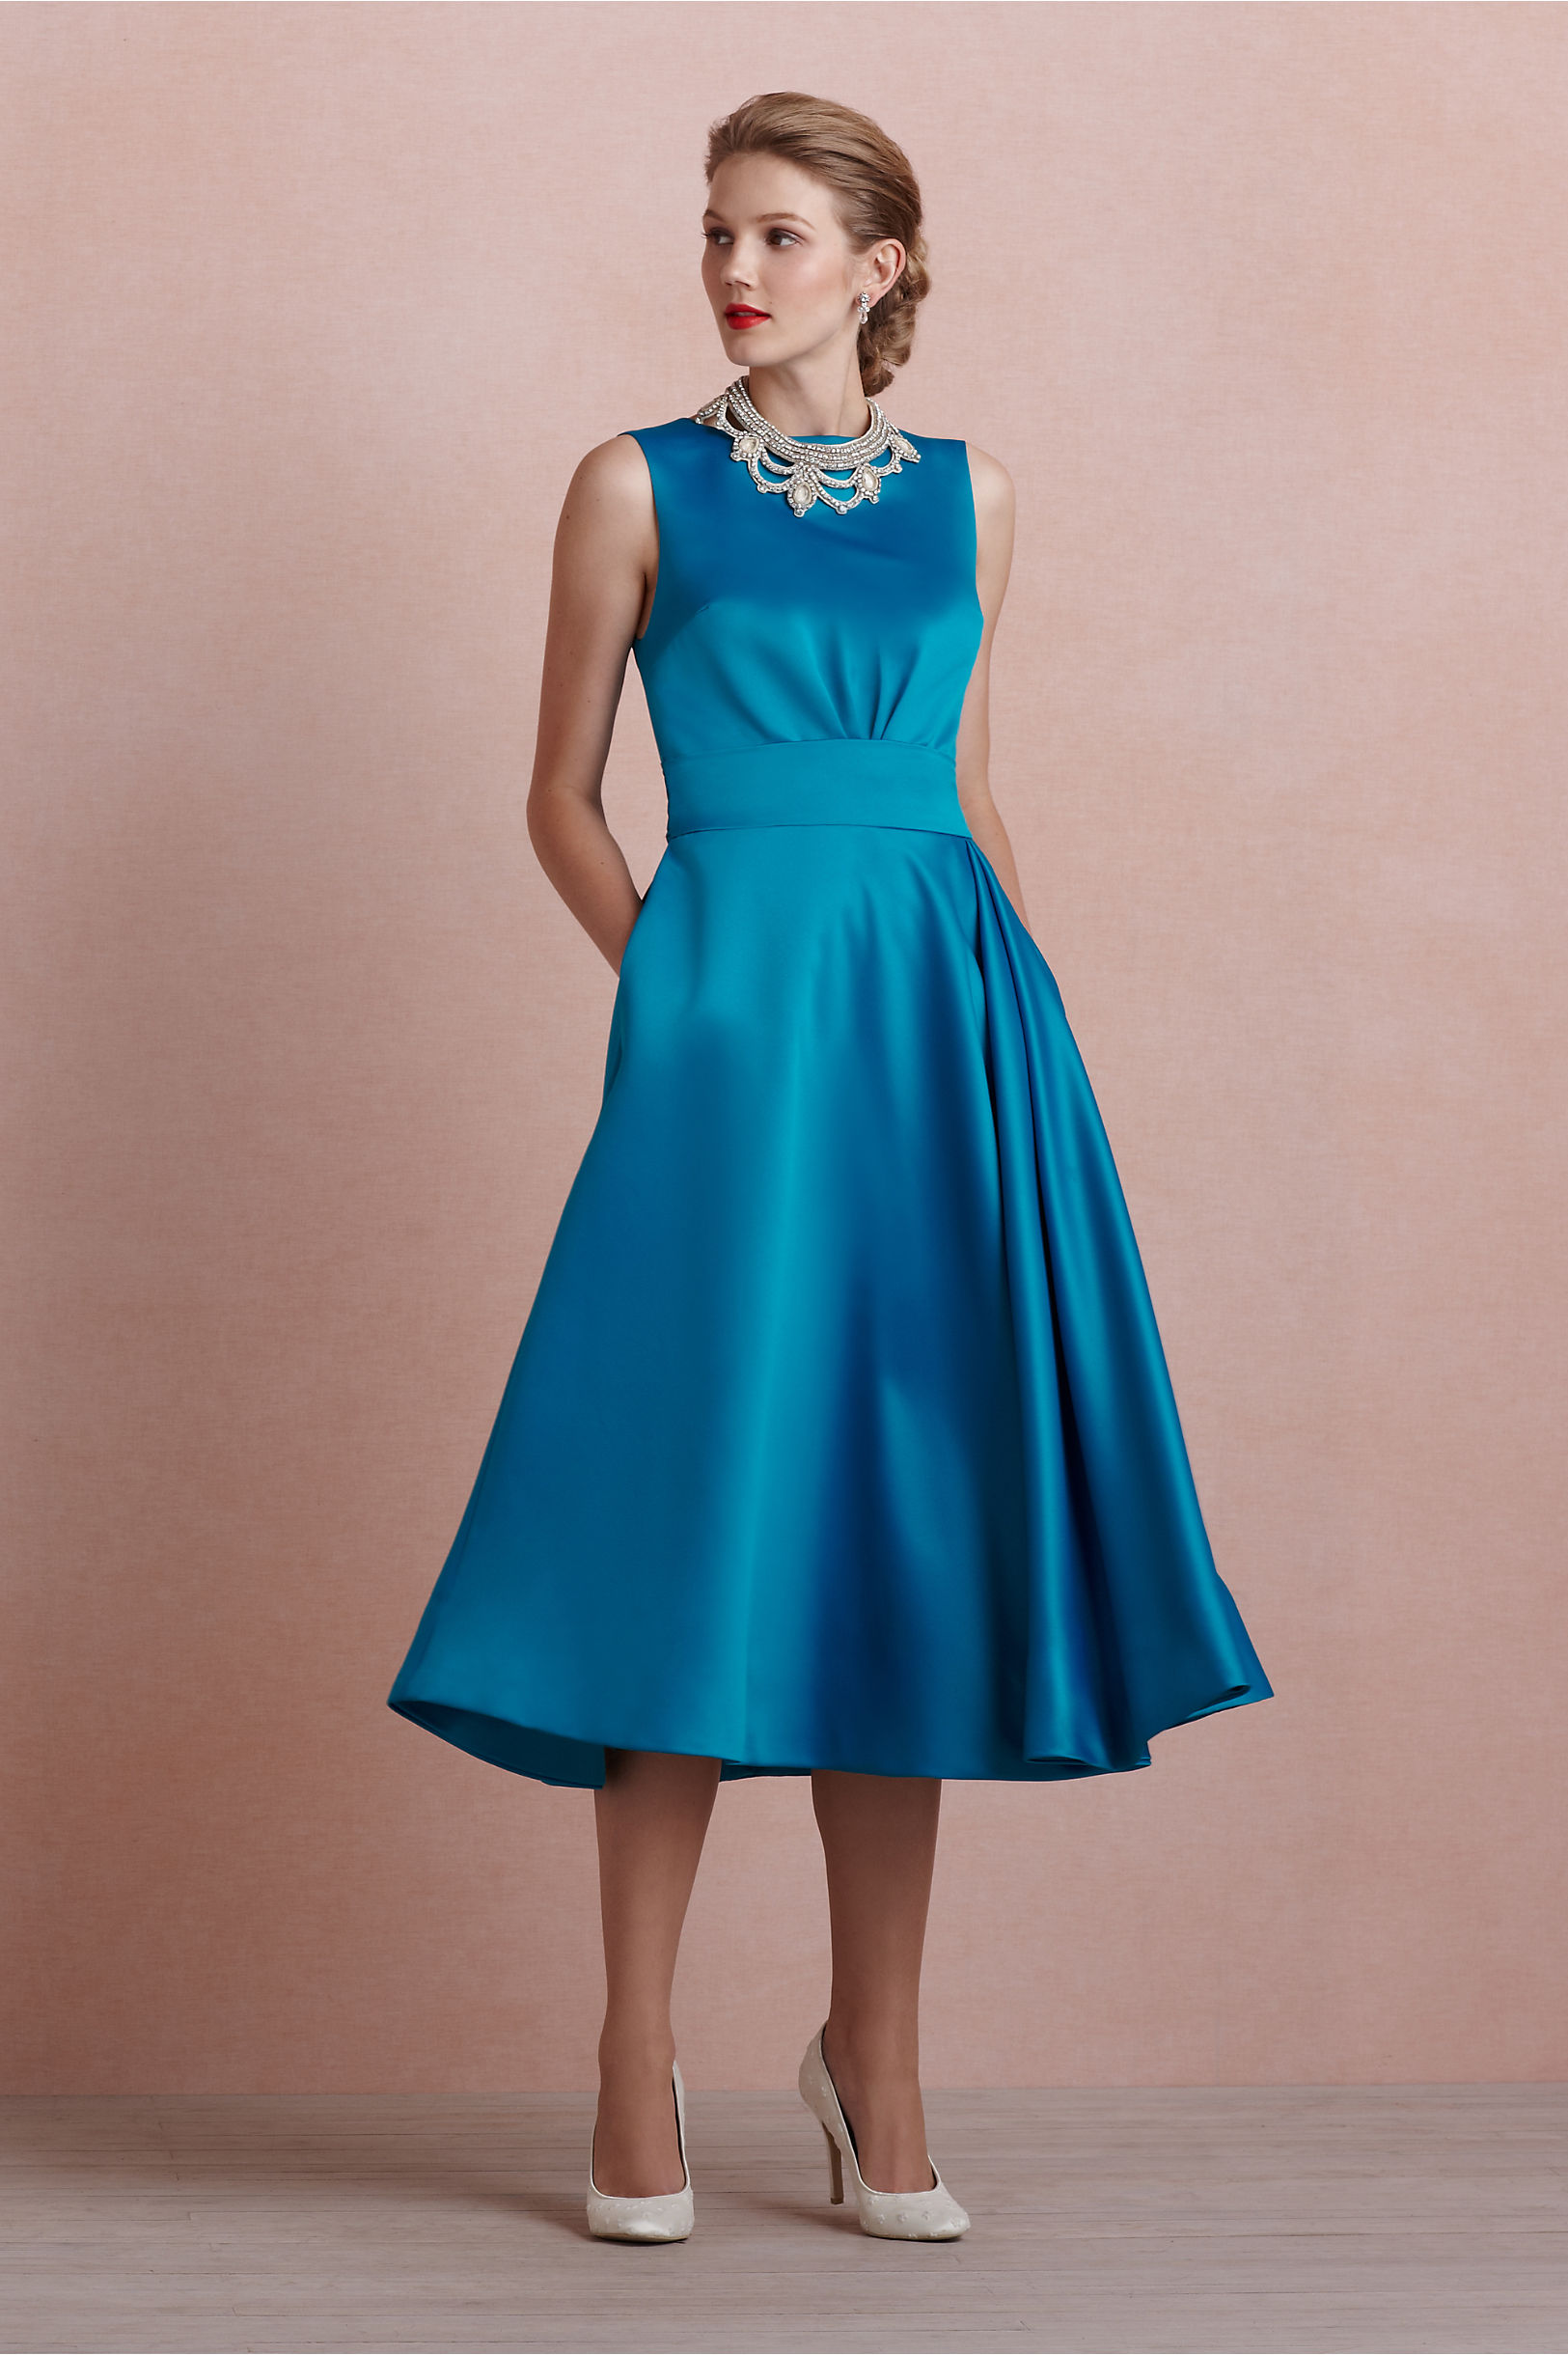 Syncopated Swing Dress in Sale | BHLDN